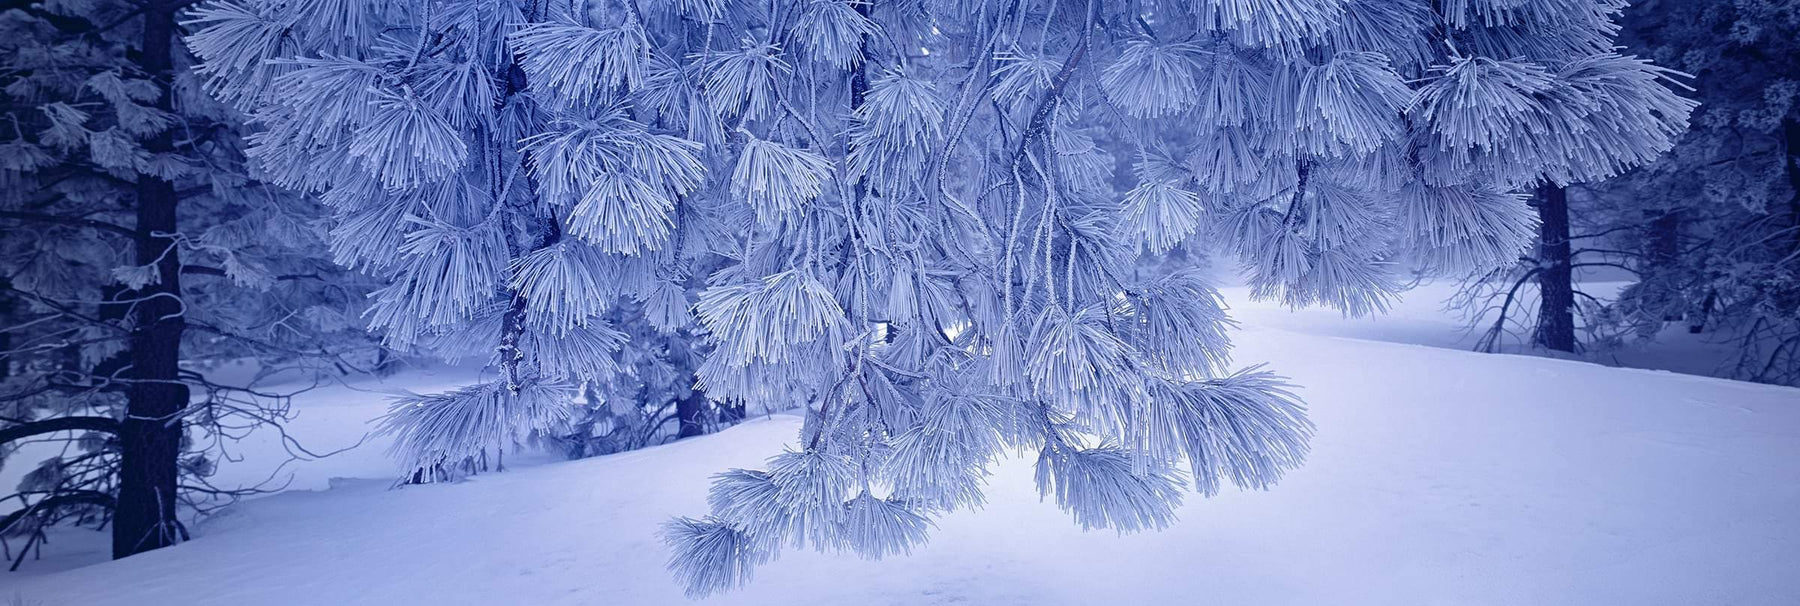 Frost covered branch of pine needles reaching over the snow covered forest floor at Mount Pinos California